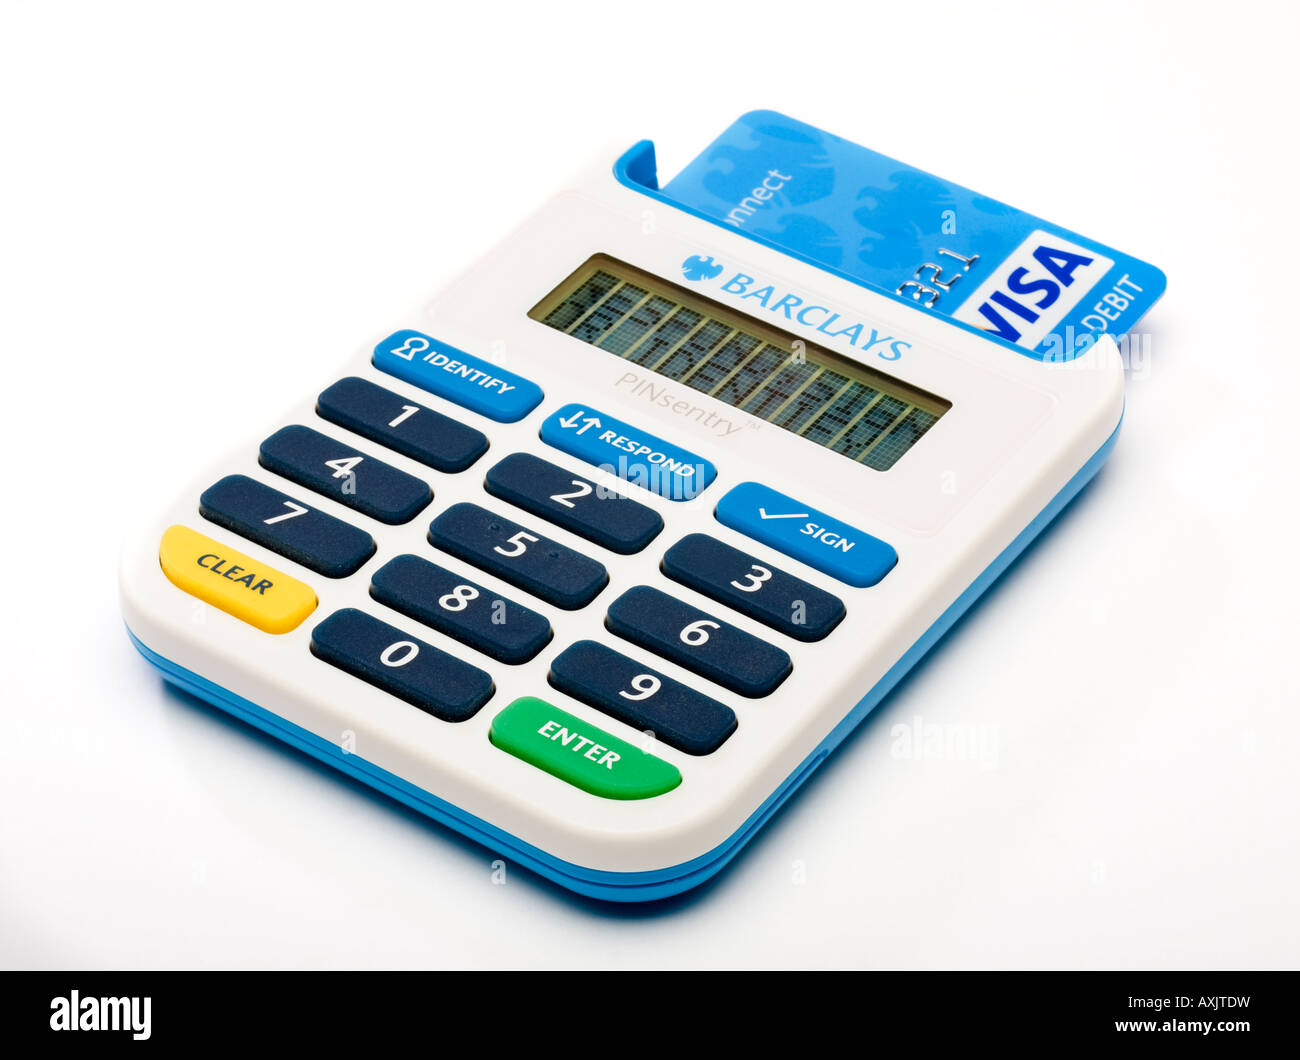 Barclays Pinsentry Card Reader Stock Photos & Barclays Pinsentry ...